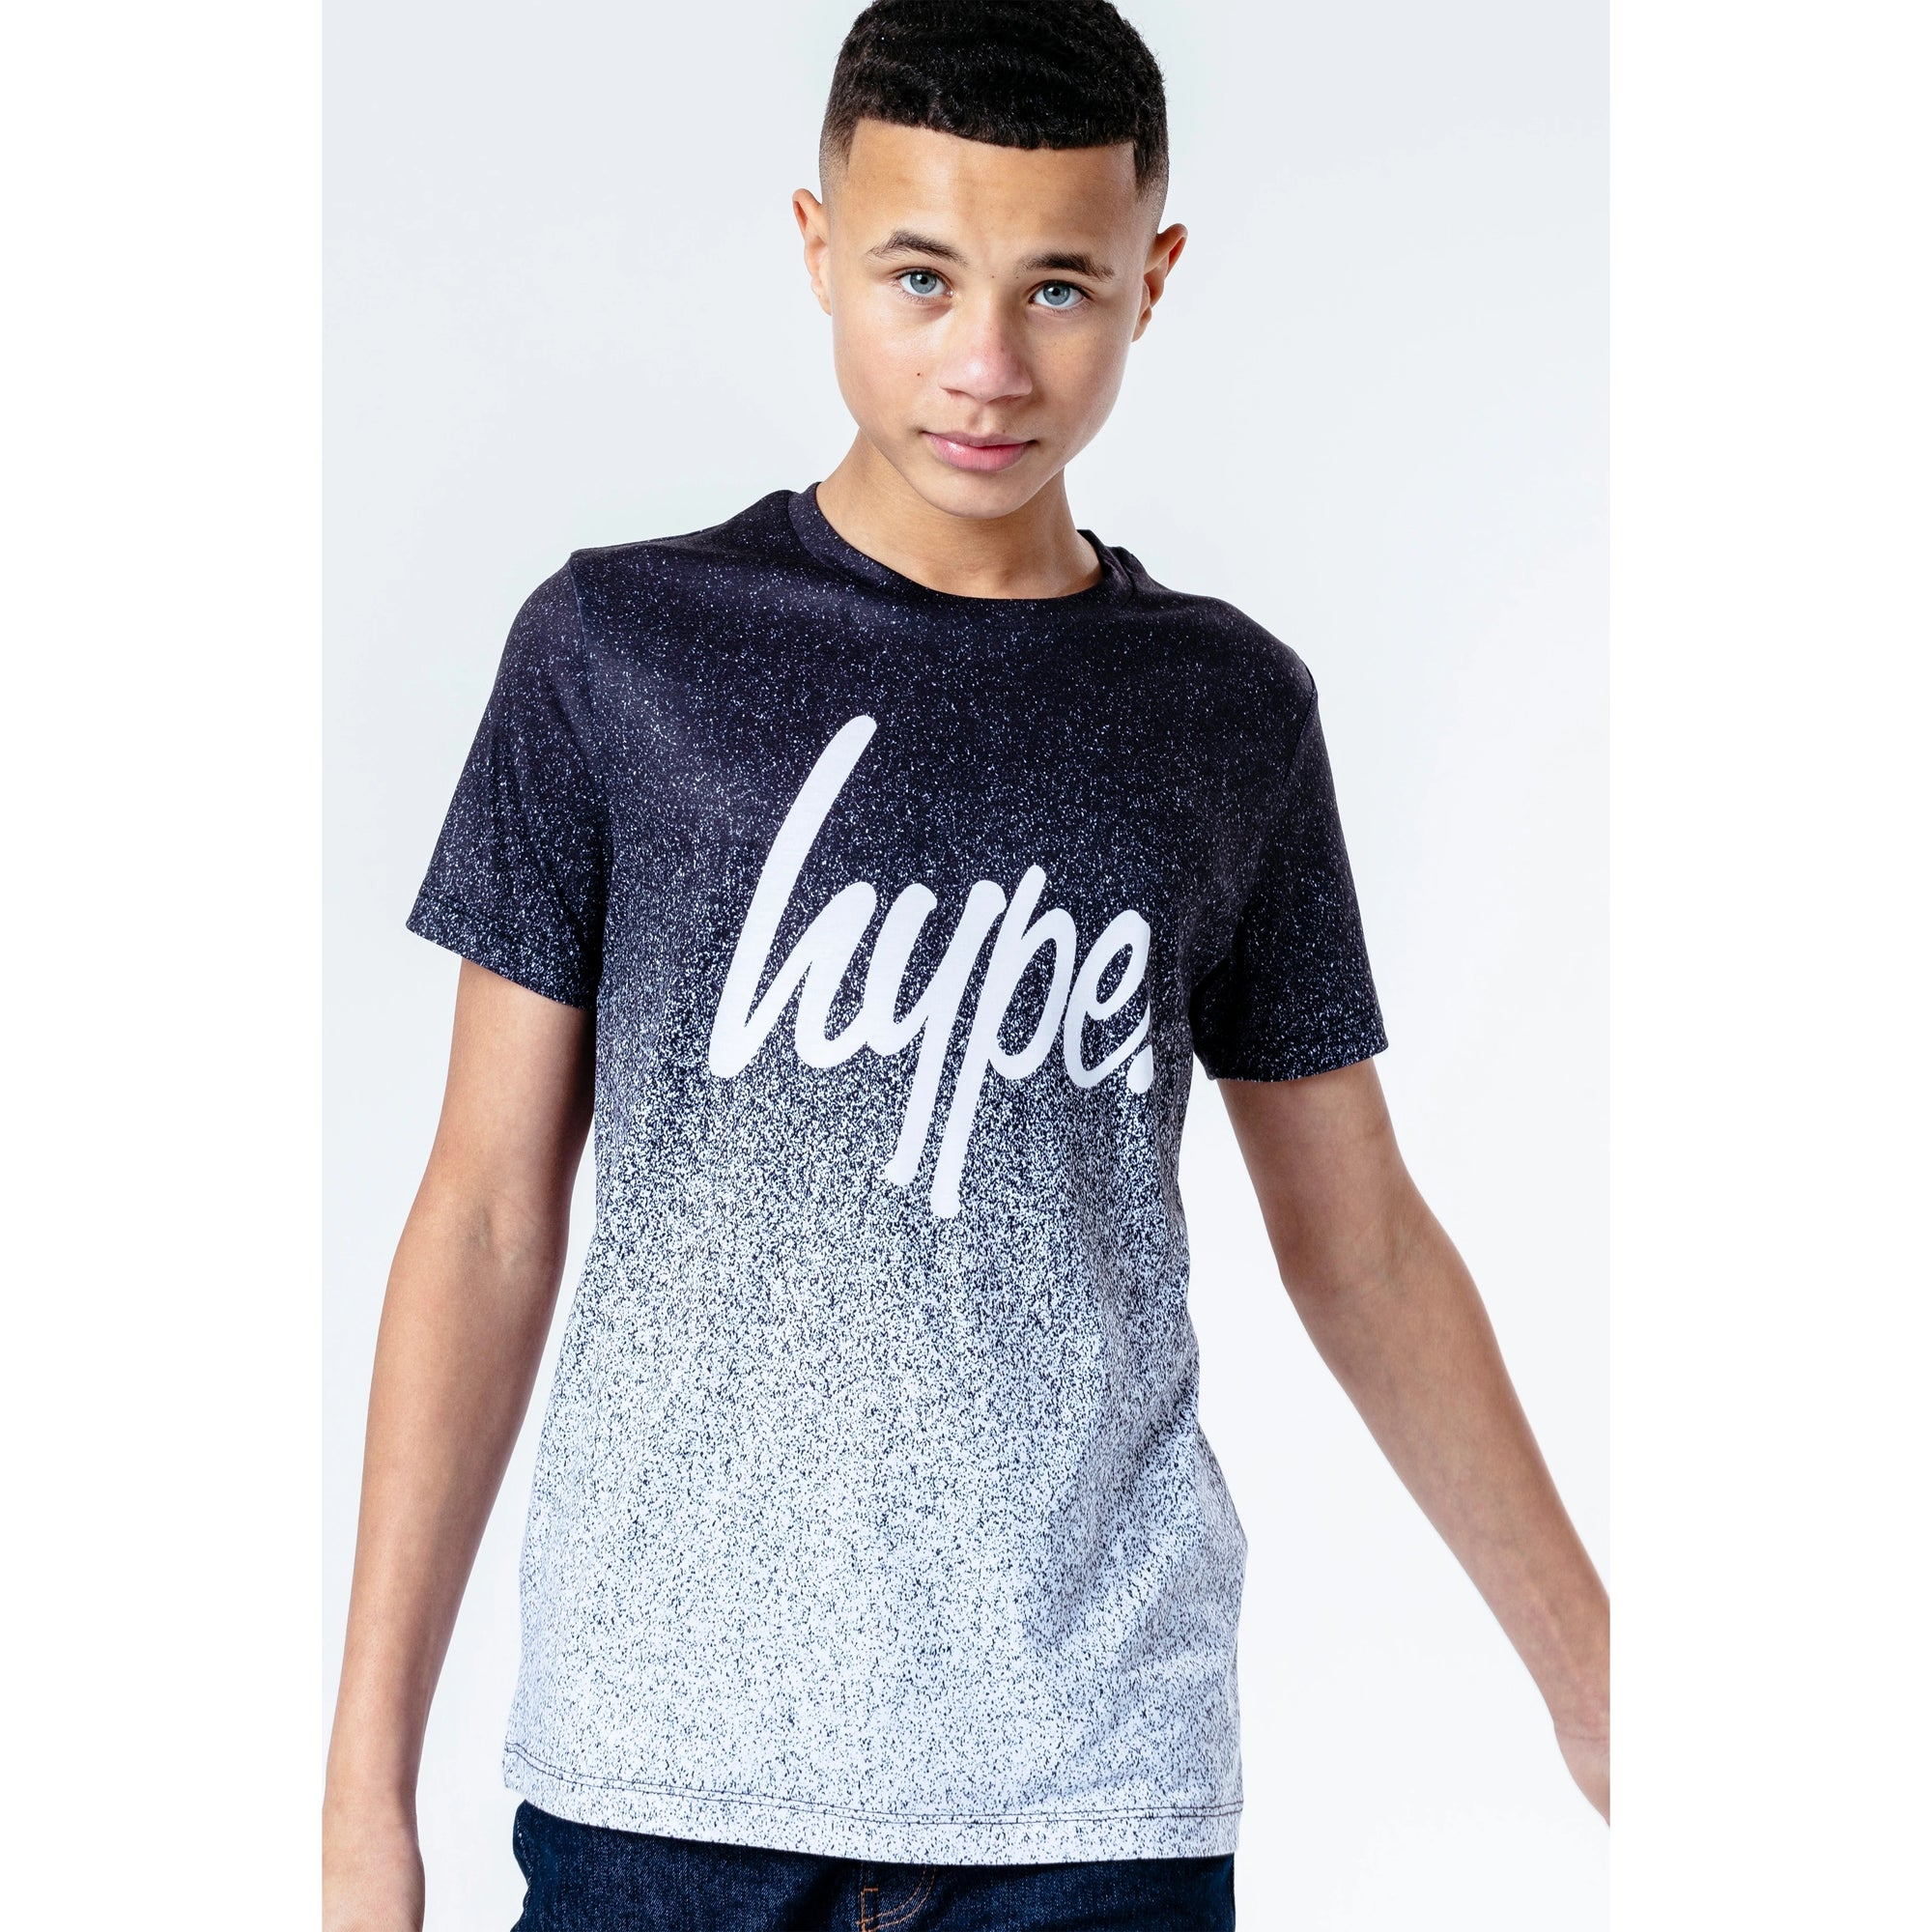 Hype Boys Speckle Fade T-Shirt Ywf264